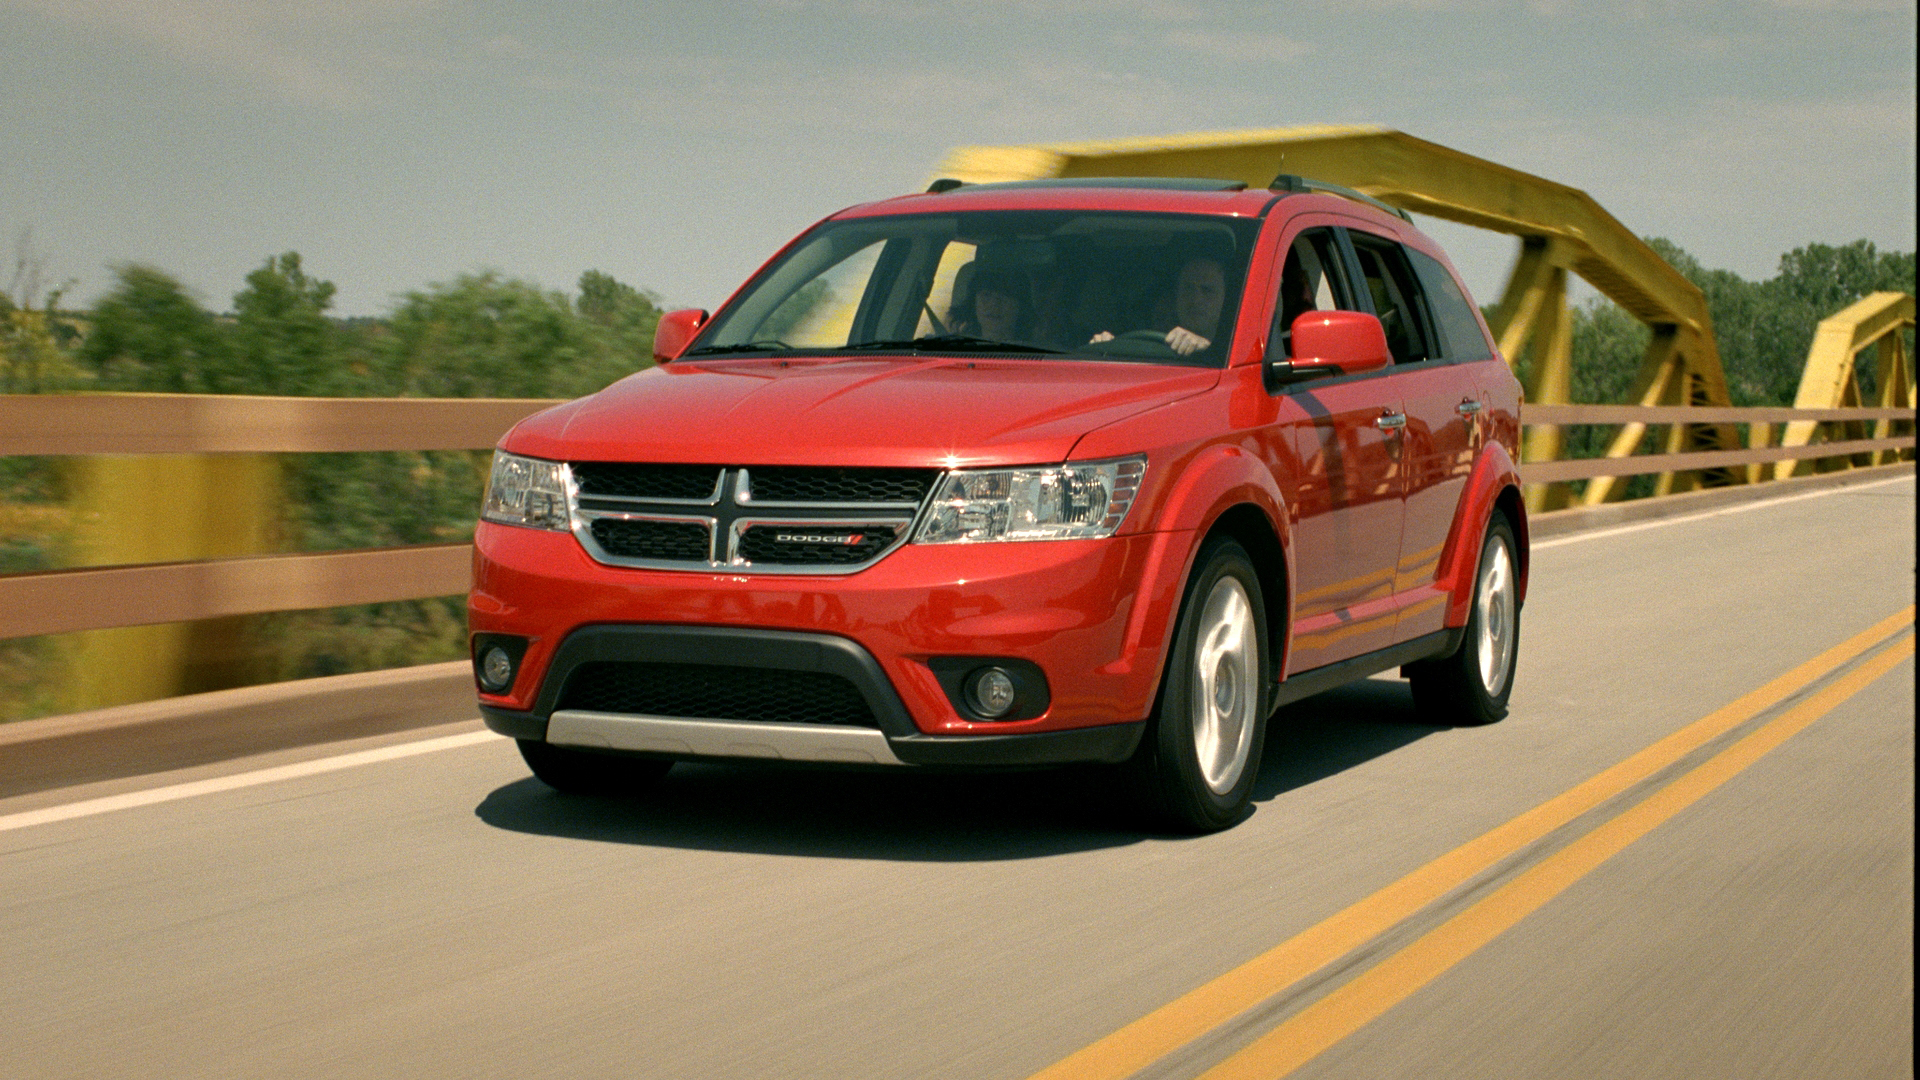 2017 Dodge Journey Search Engine For The Real World Giveaway Concludes With East Winner